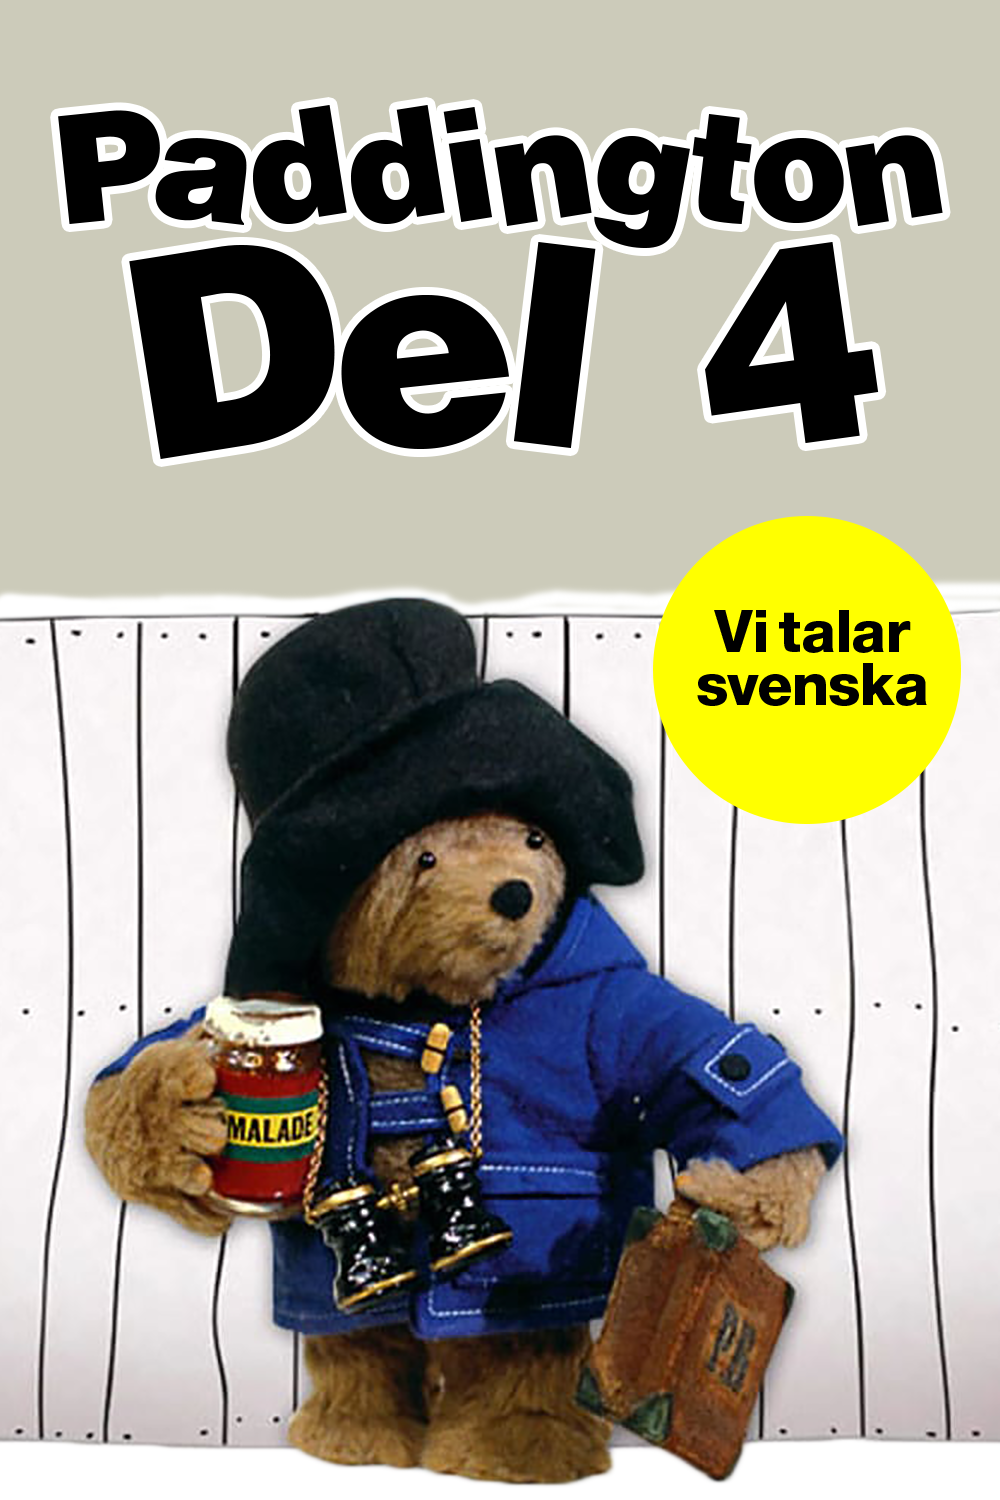 Paddington del 4 [Elektronisk resurs] / regi: Michael Bond.